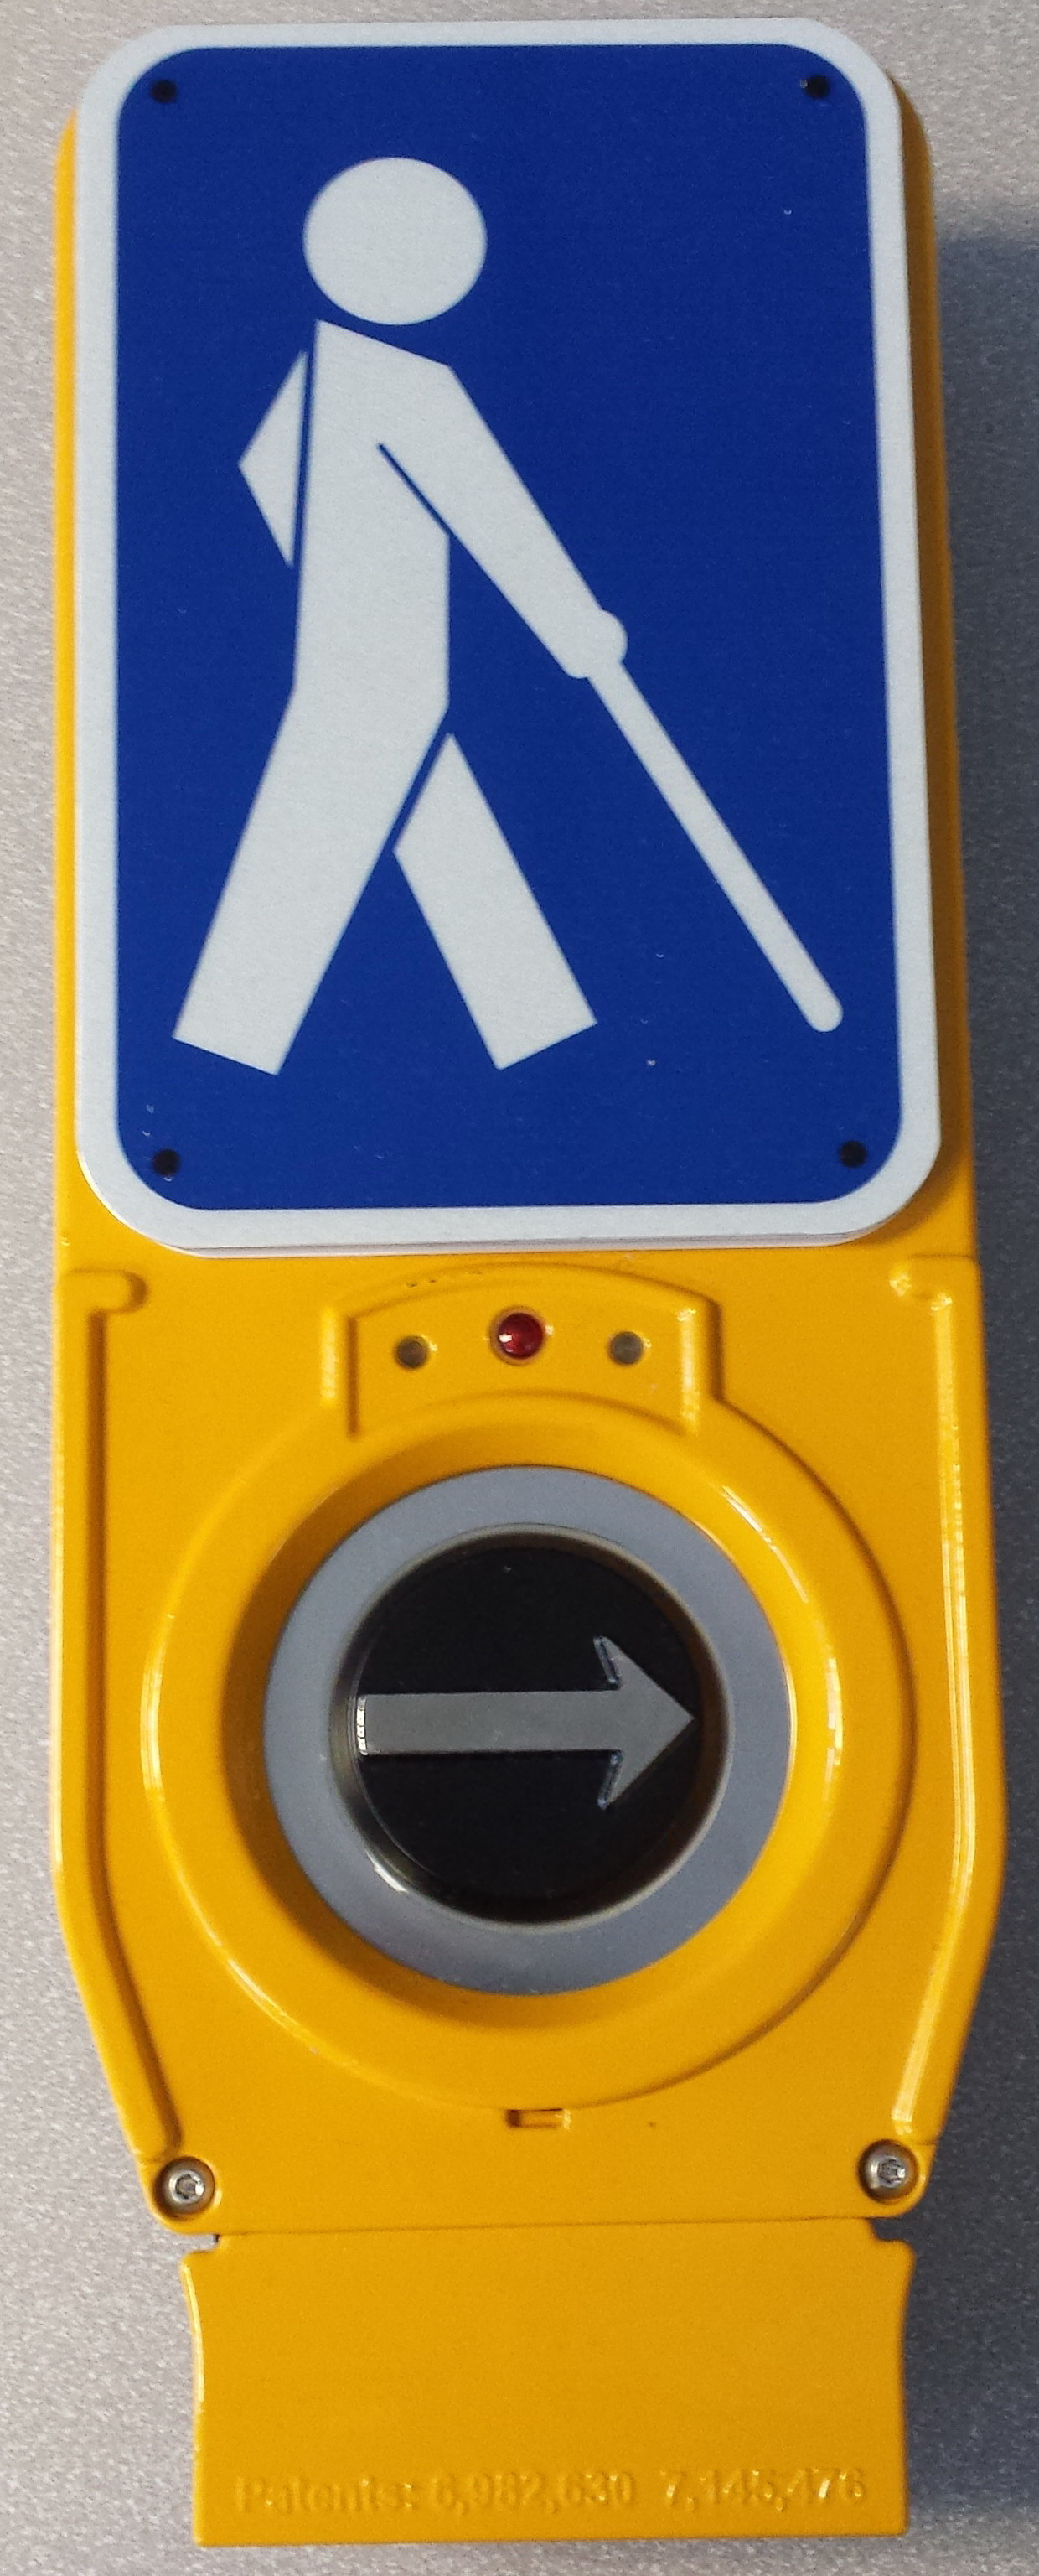 Accessible Pedestrian Signal